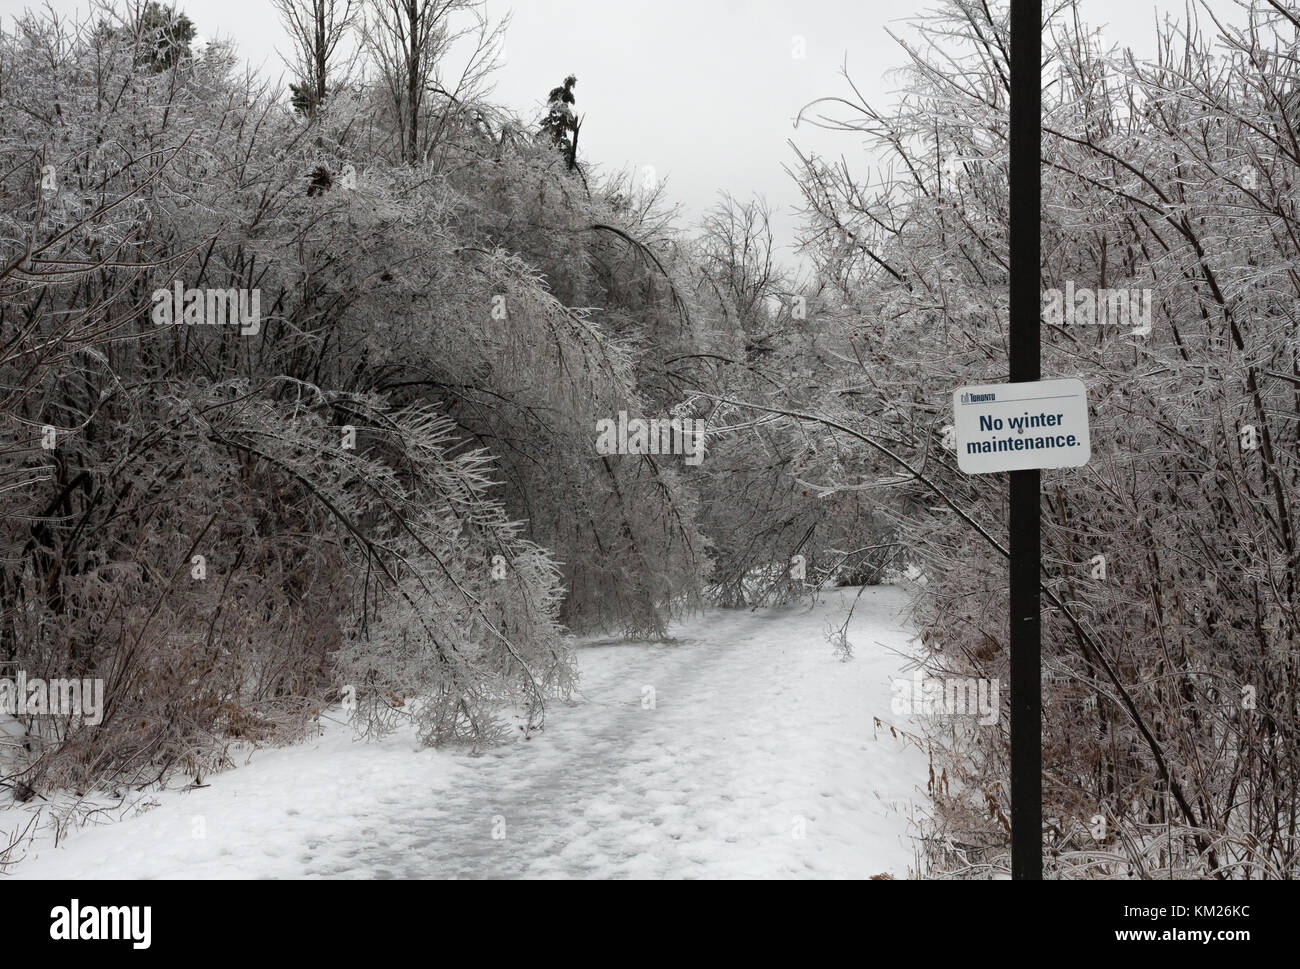 Damage caused by severe winter ice storm in Toronto, Ontario, Canada - Stock Image